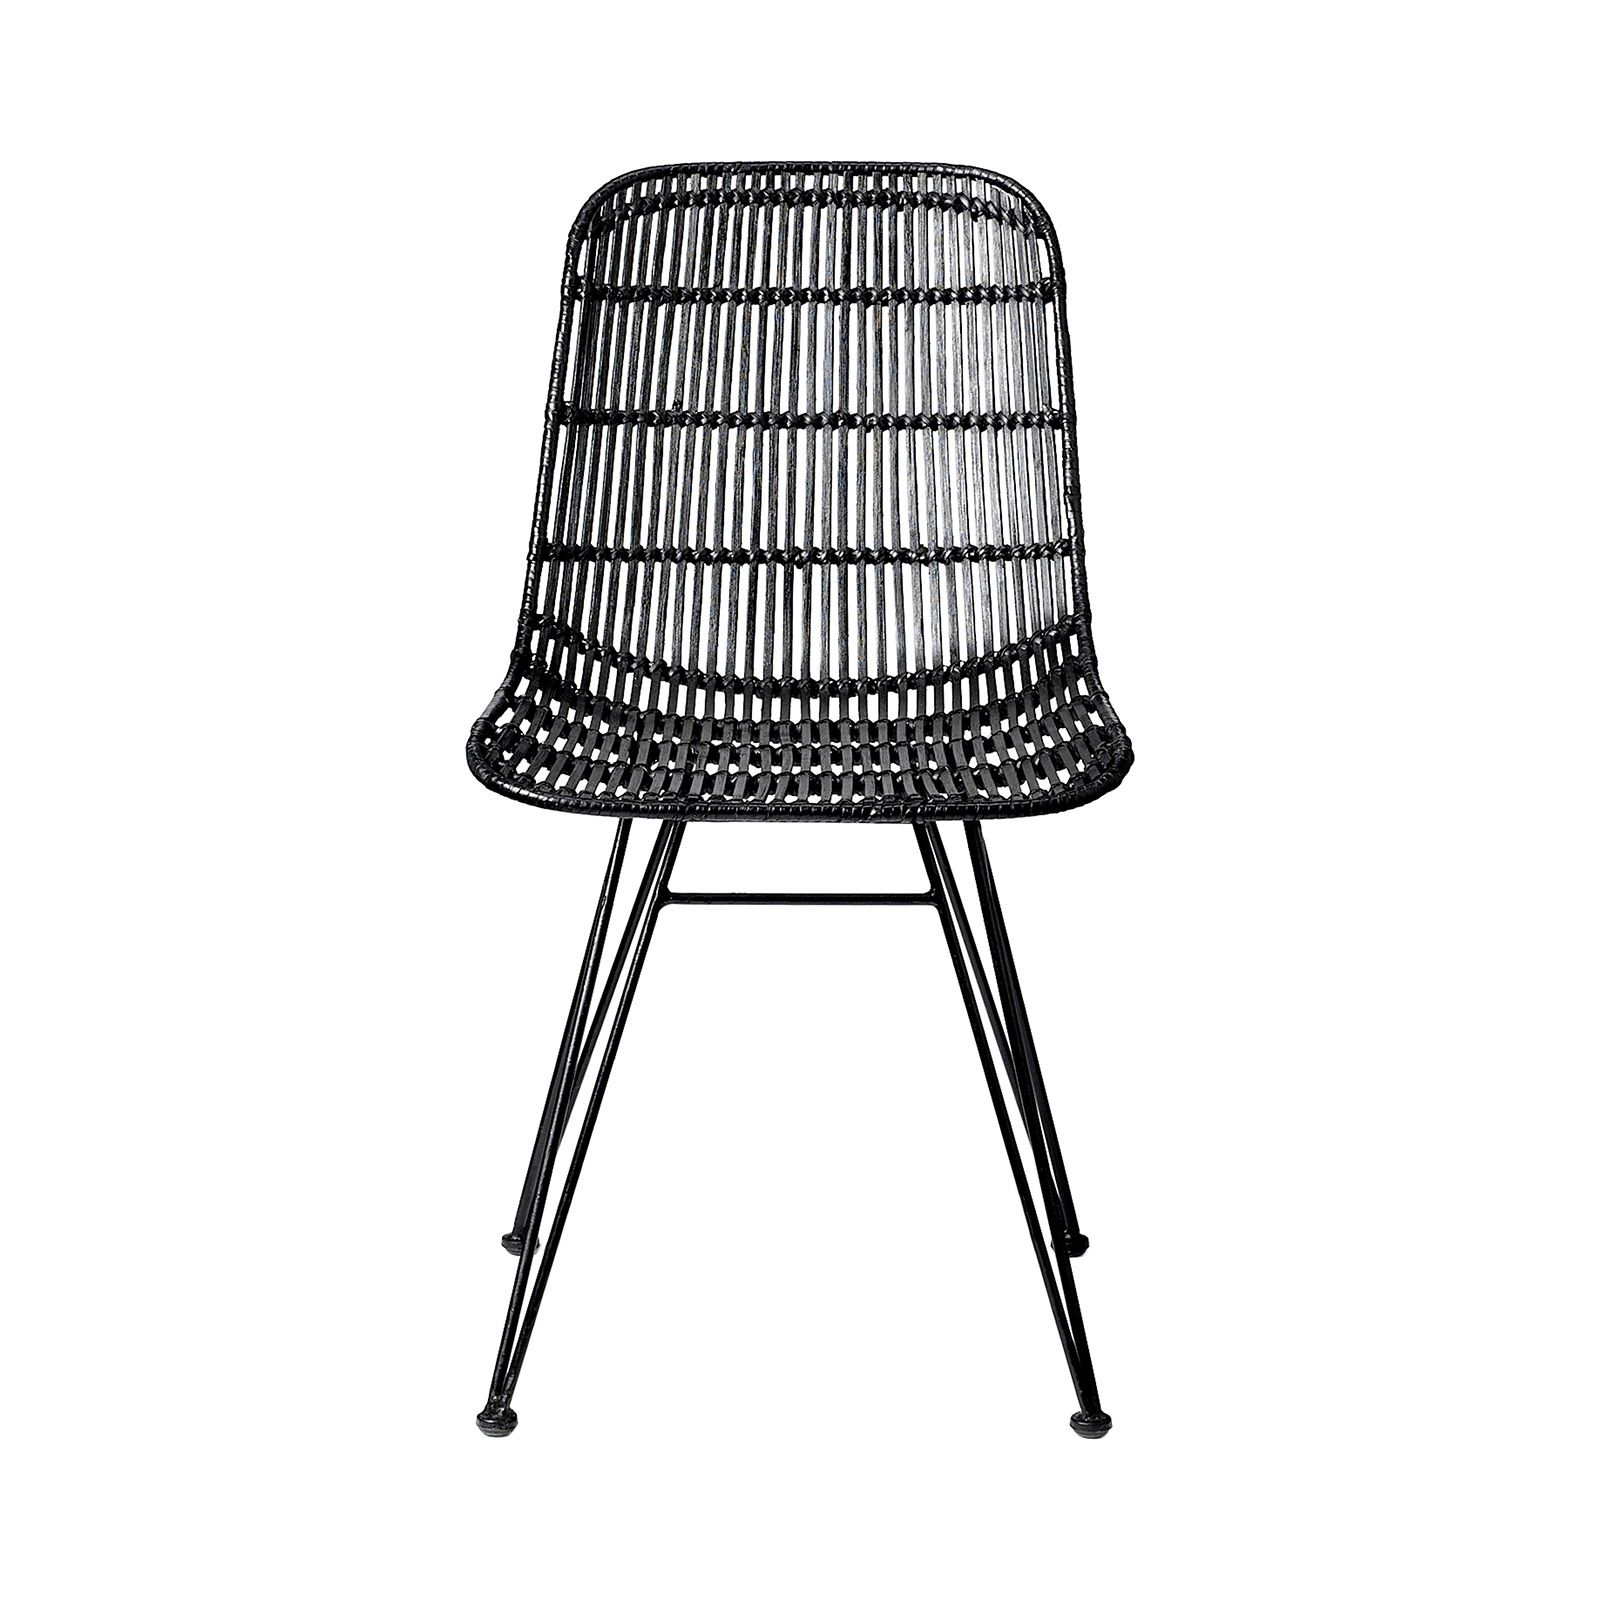 Paragon Rattan Chair Rattan chair, White leather dining